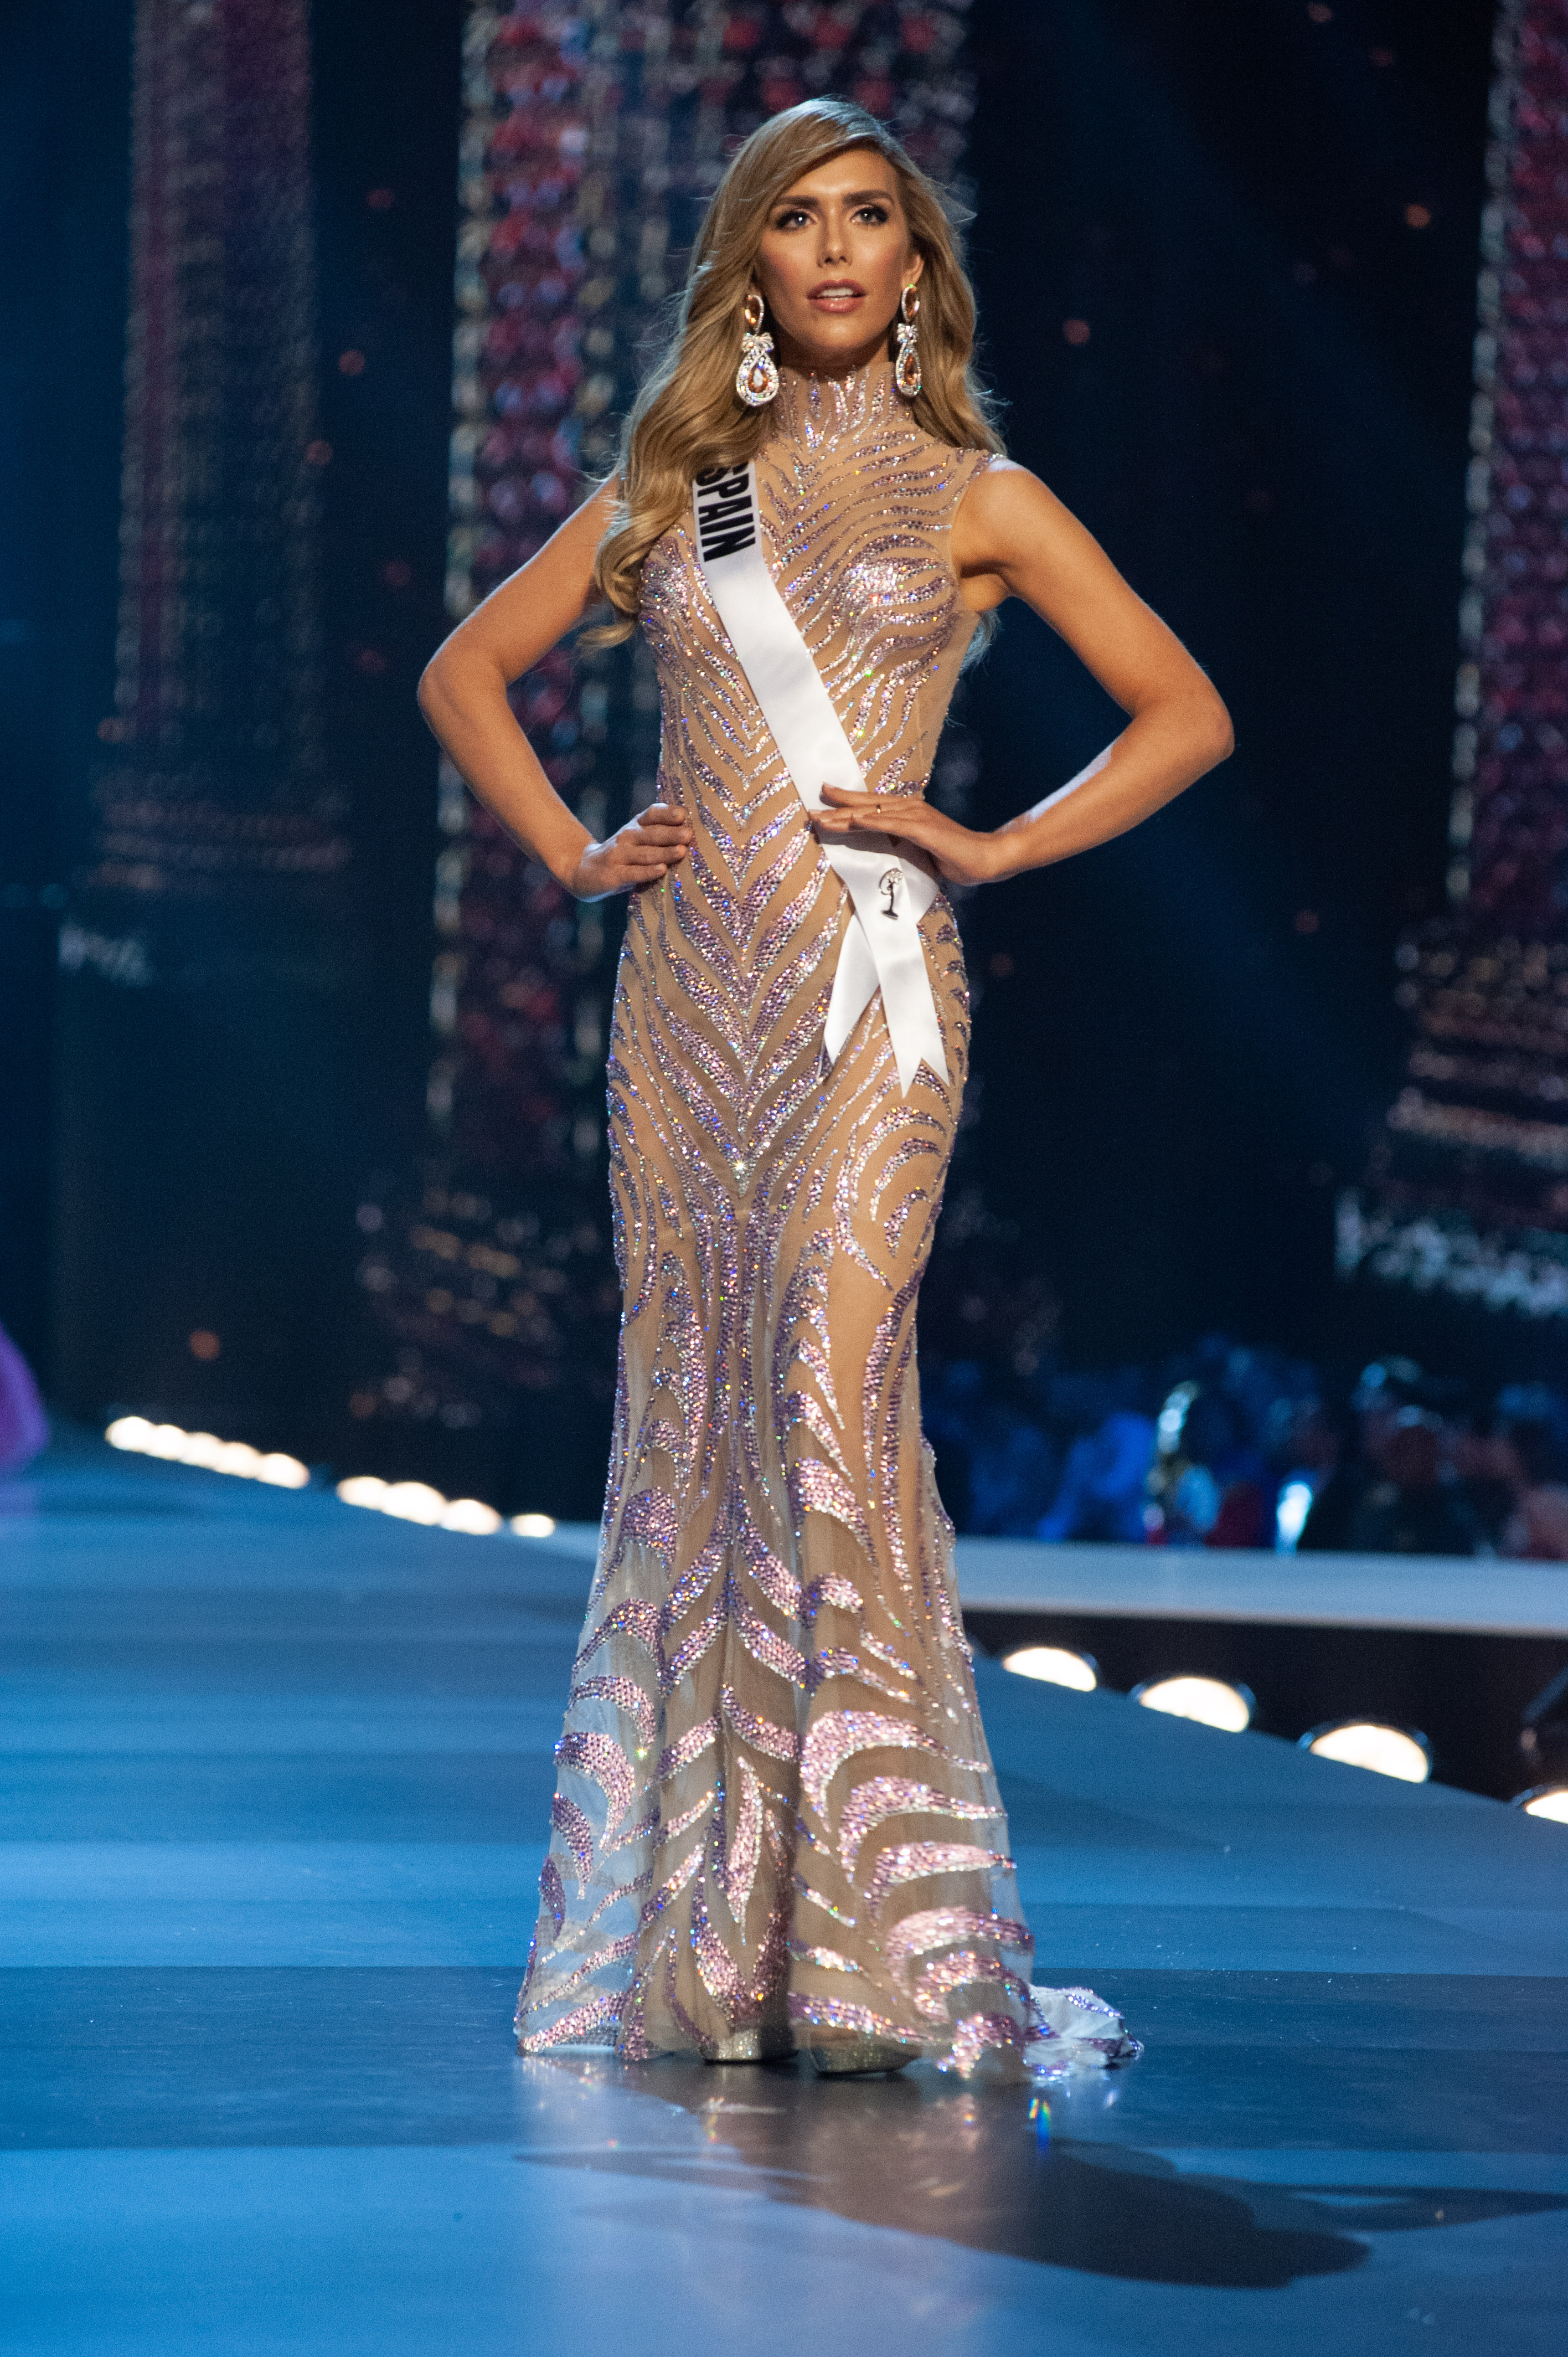 EVENING GOWN. Angela  during the Preliminary Competition at IMPACT Arena in Bangkok, Thailand on Thursday, December 13th. Photo by Patrick Prather/Miss Universe